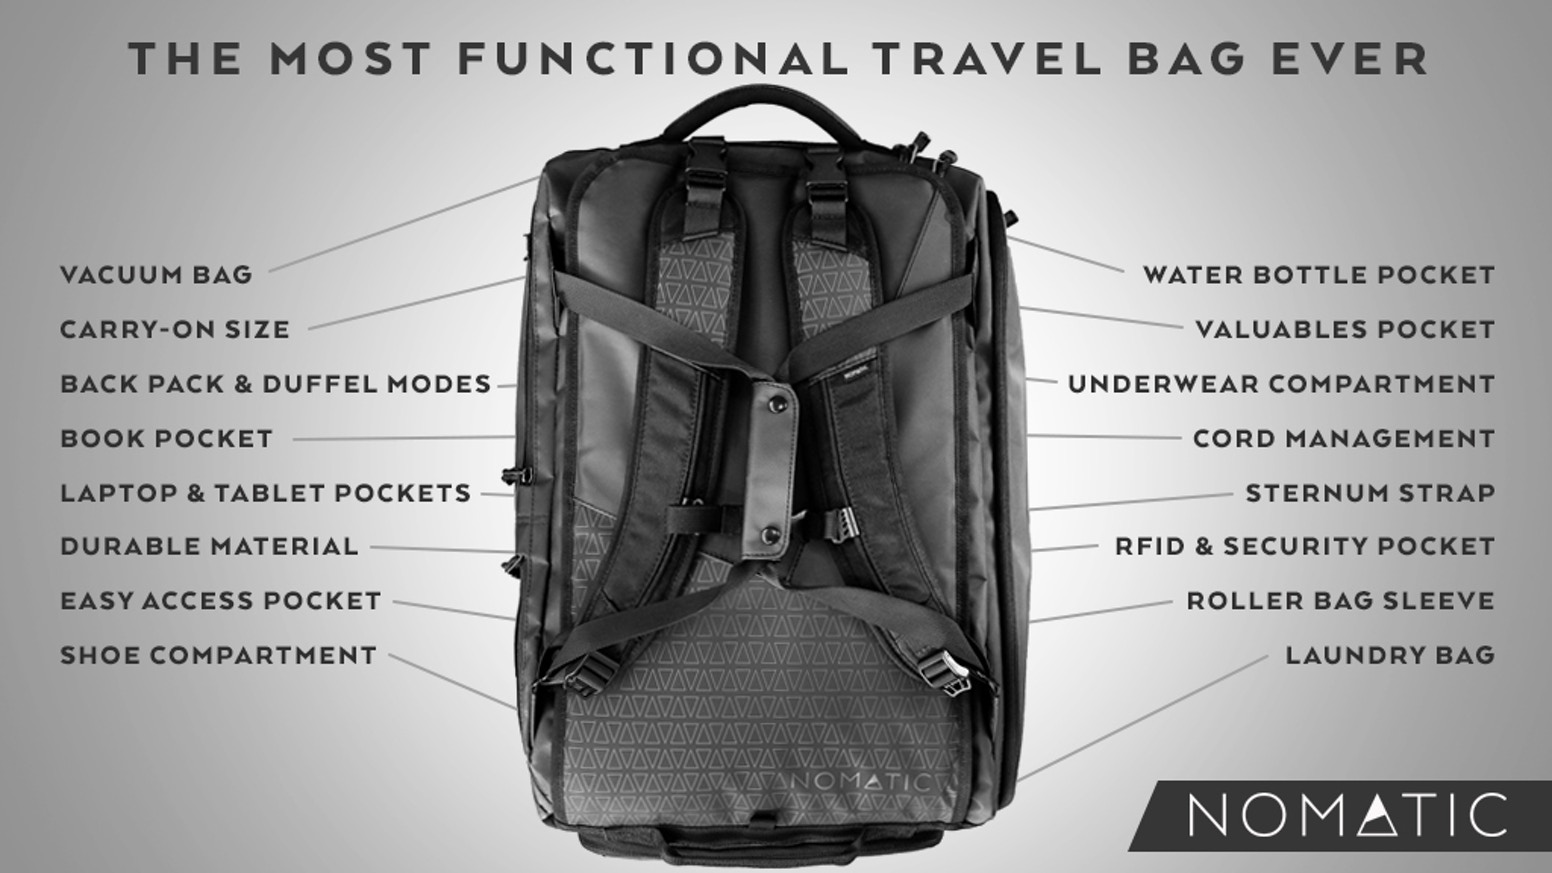 f98927efe The NOMATIC Travel Bag: The Most Functional Travel Bag Ever!